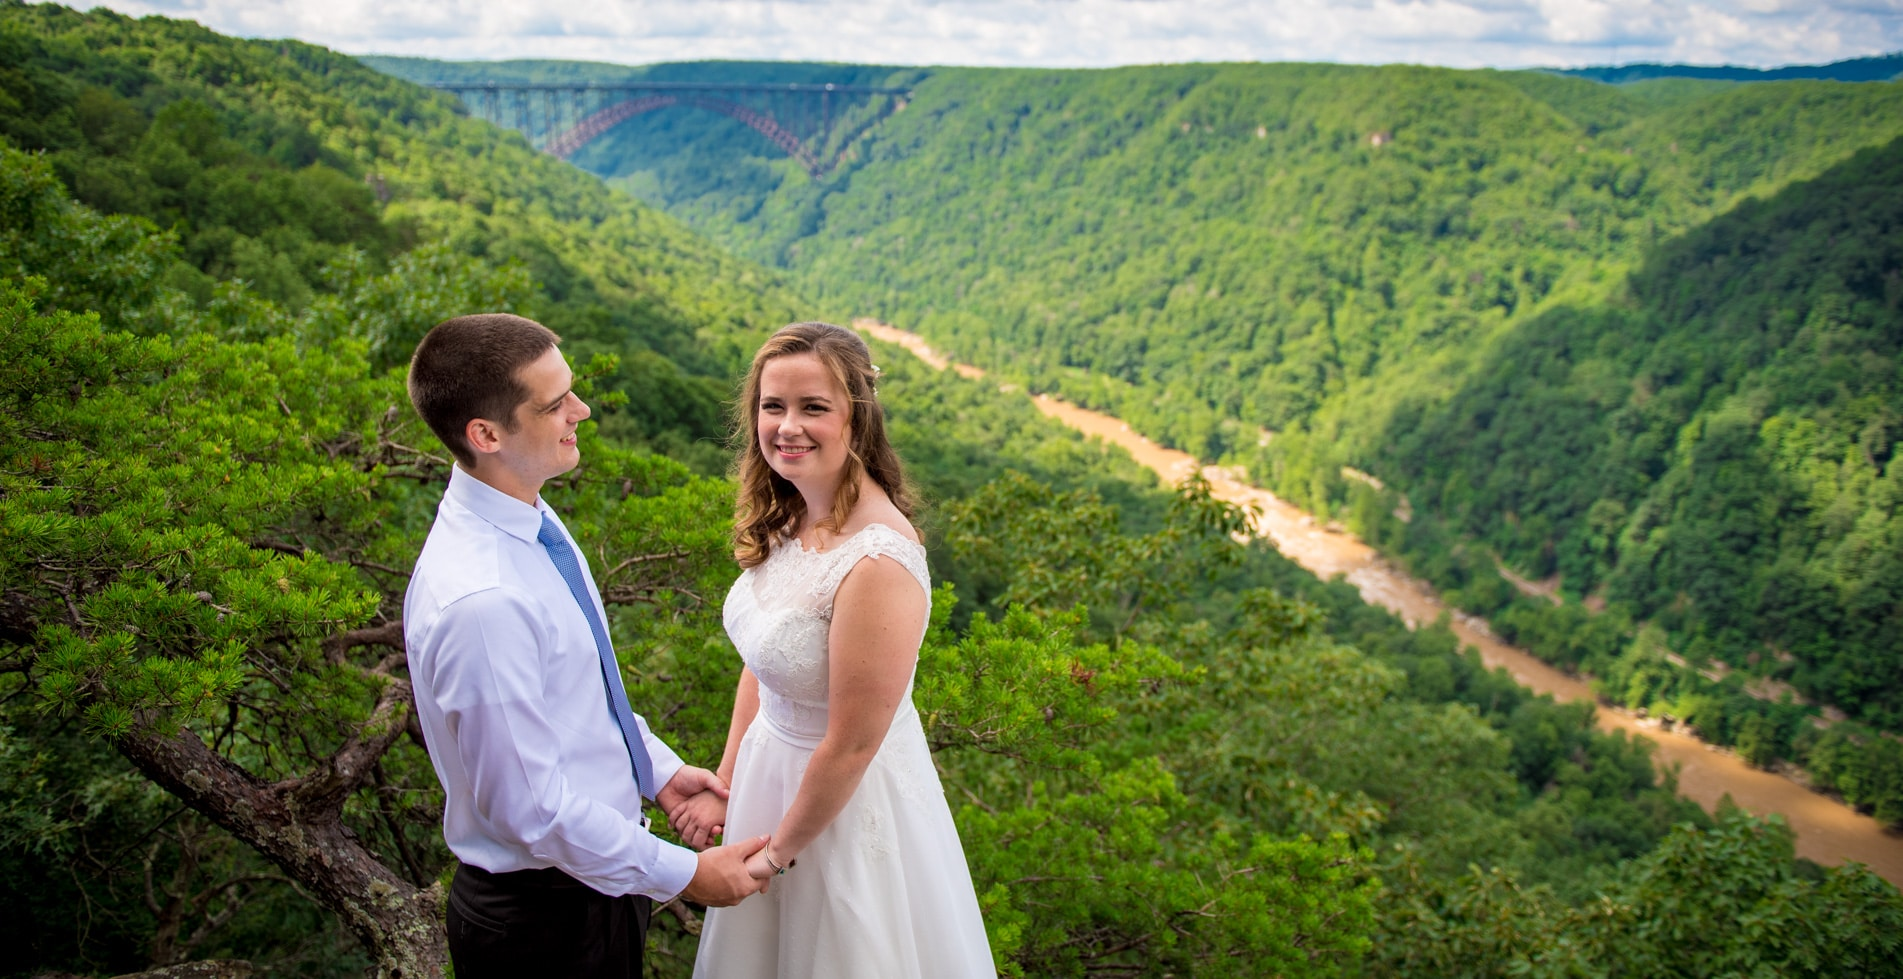 Adventures On The Gorge Wedding | Christine & Clint